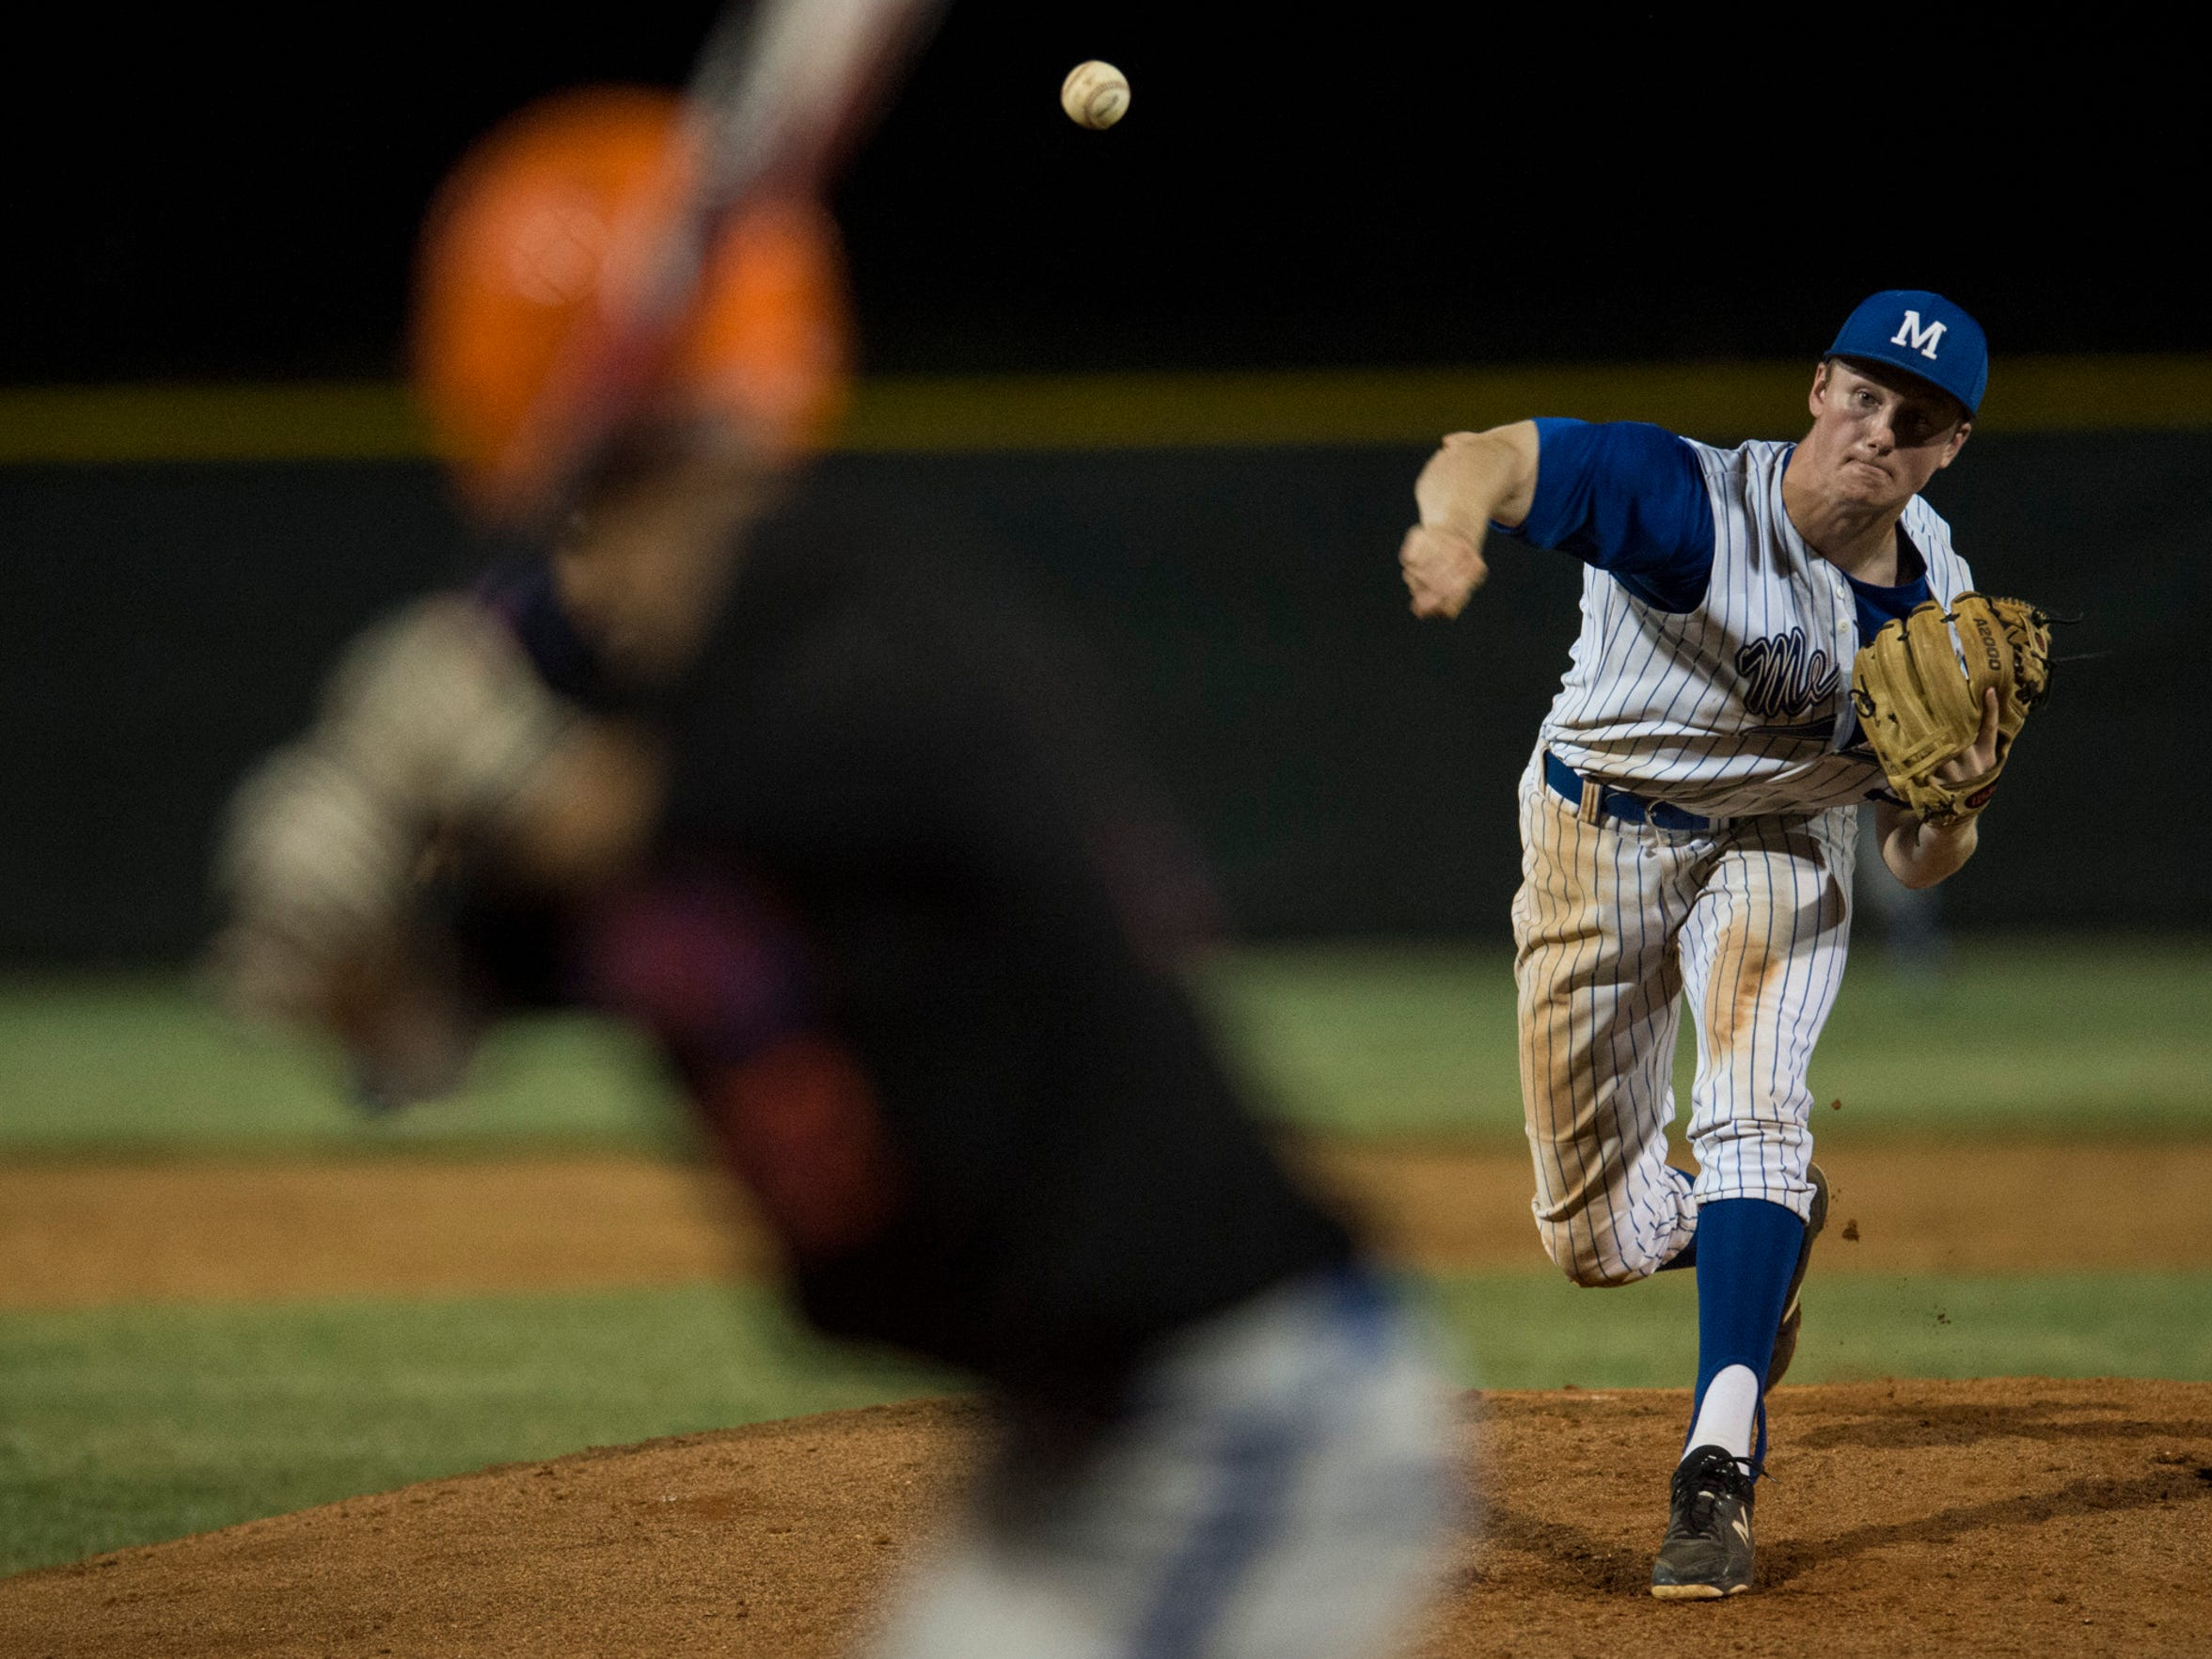 Memorial's Michael Lindauer (22) pitches against Silver